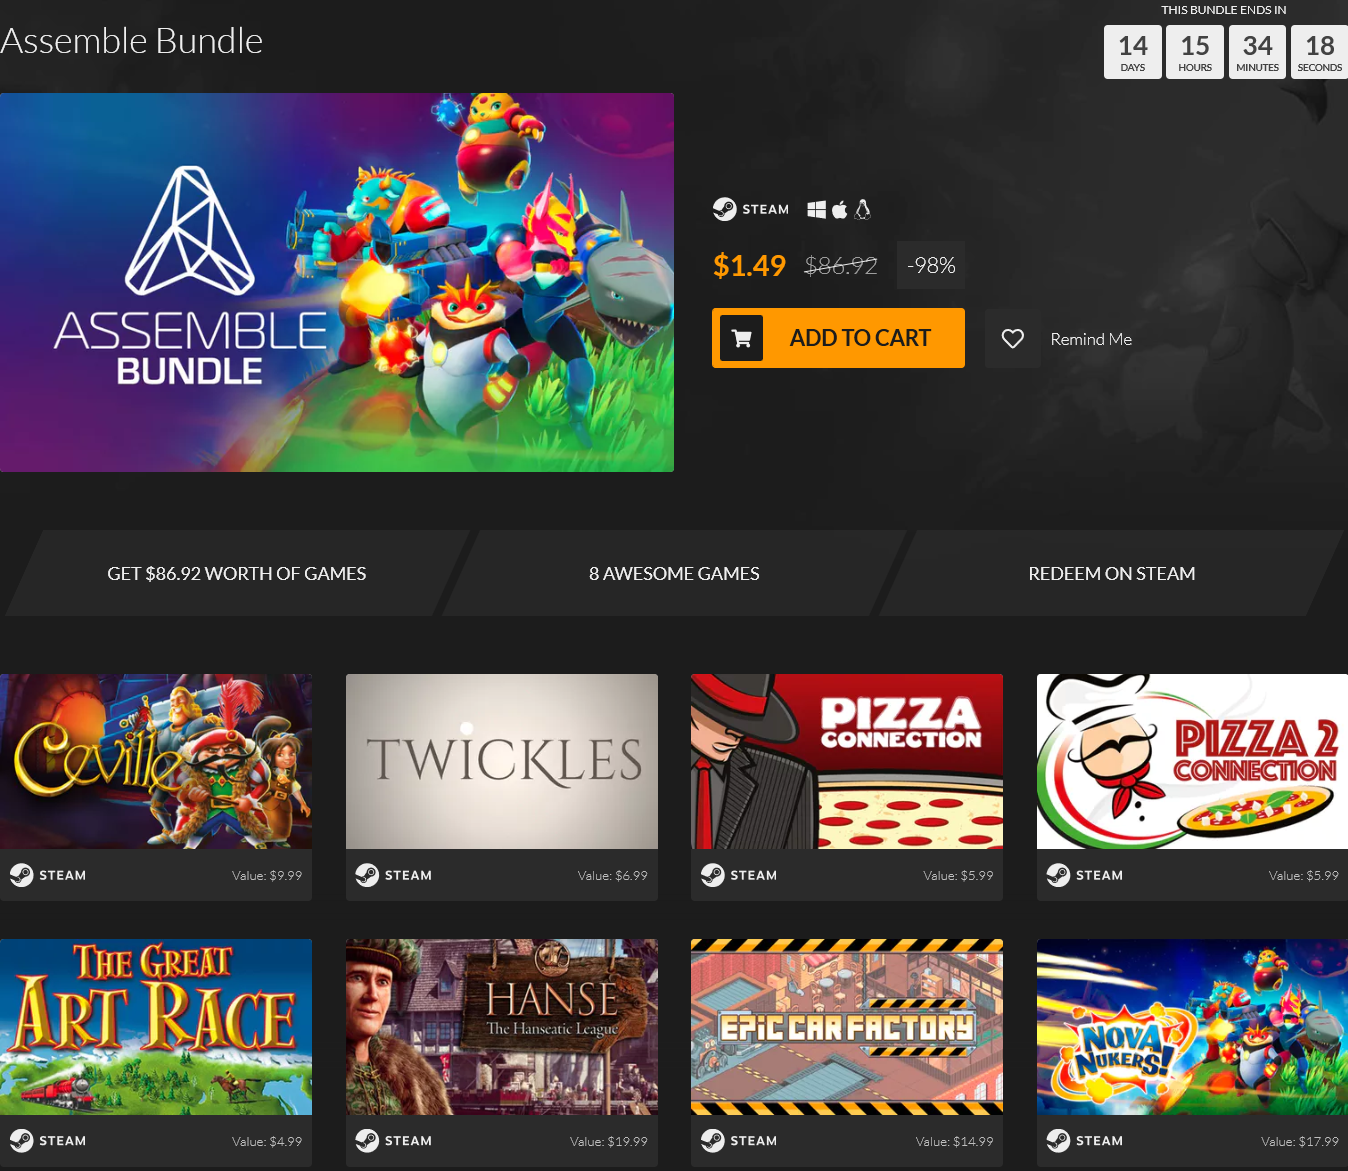 Screenshot_2019-06-15 Assemble Bundle Steam Game Bundle Fanatical.png